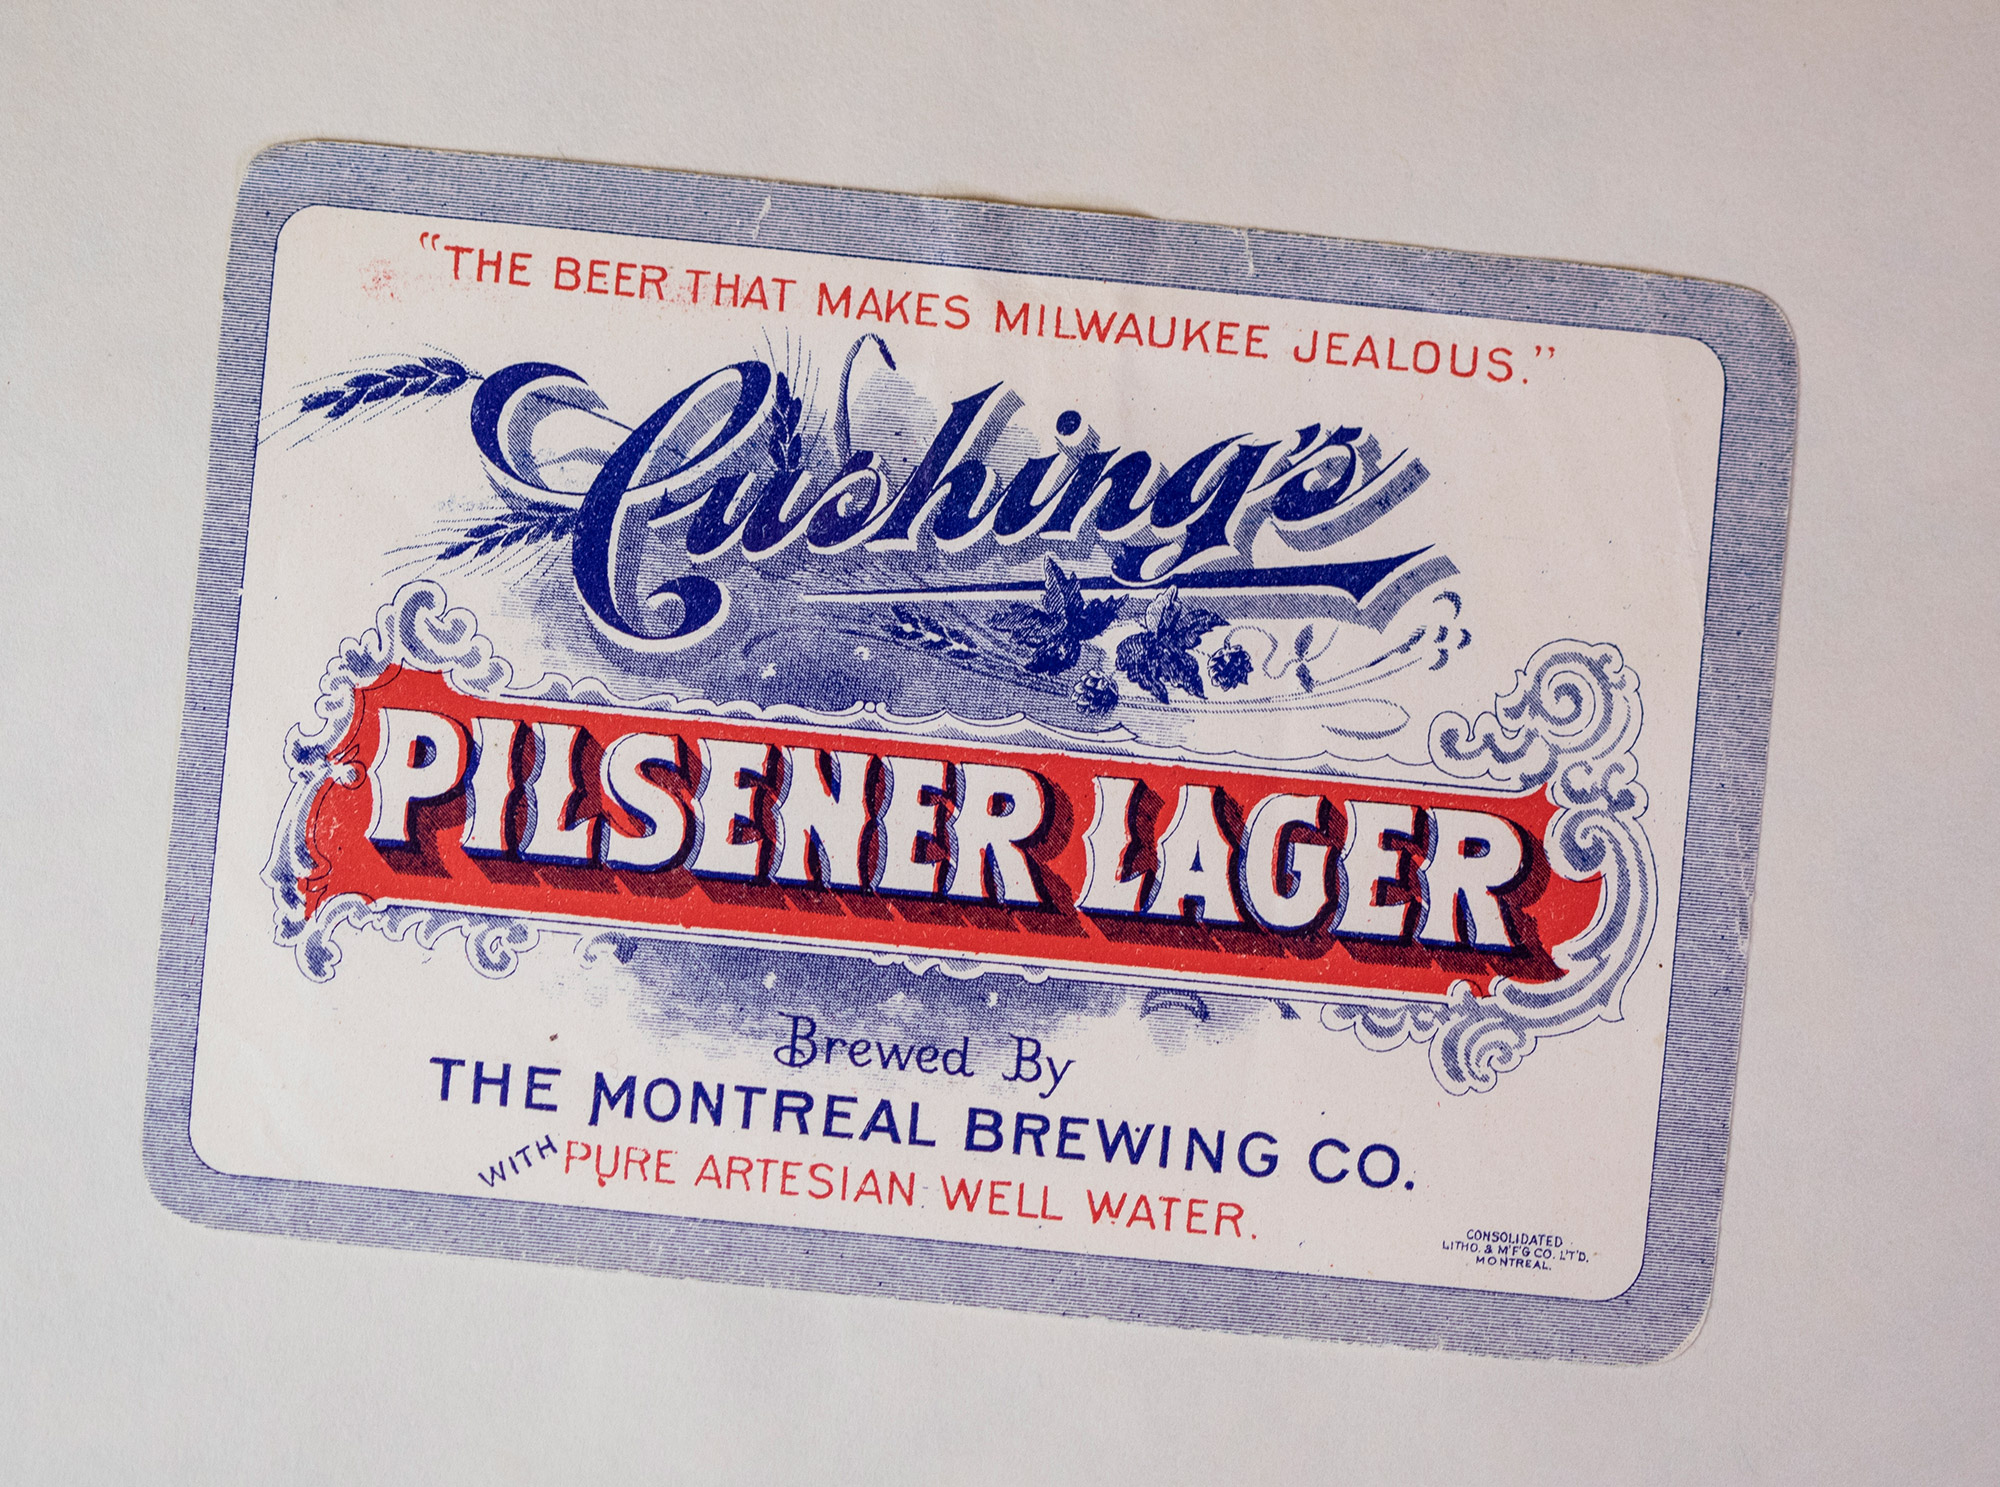 Old Cushing's Pilsener Lager label